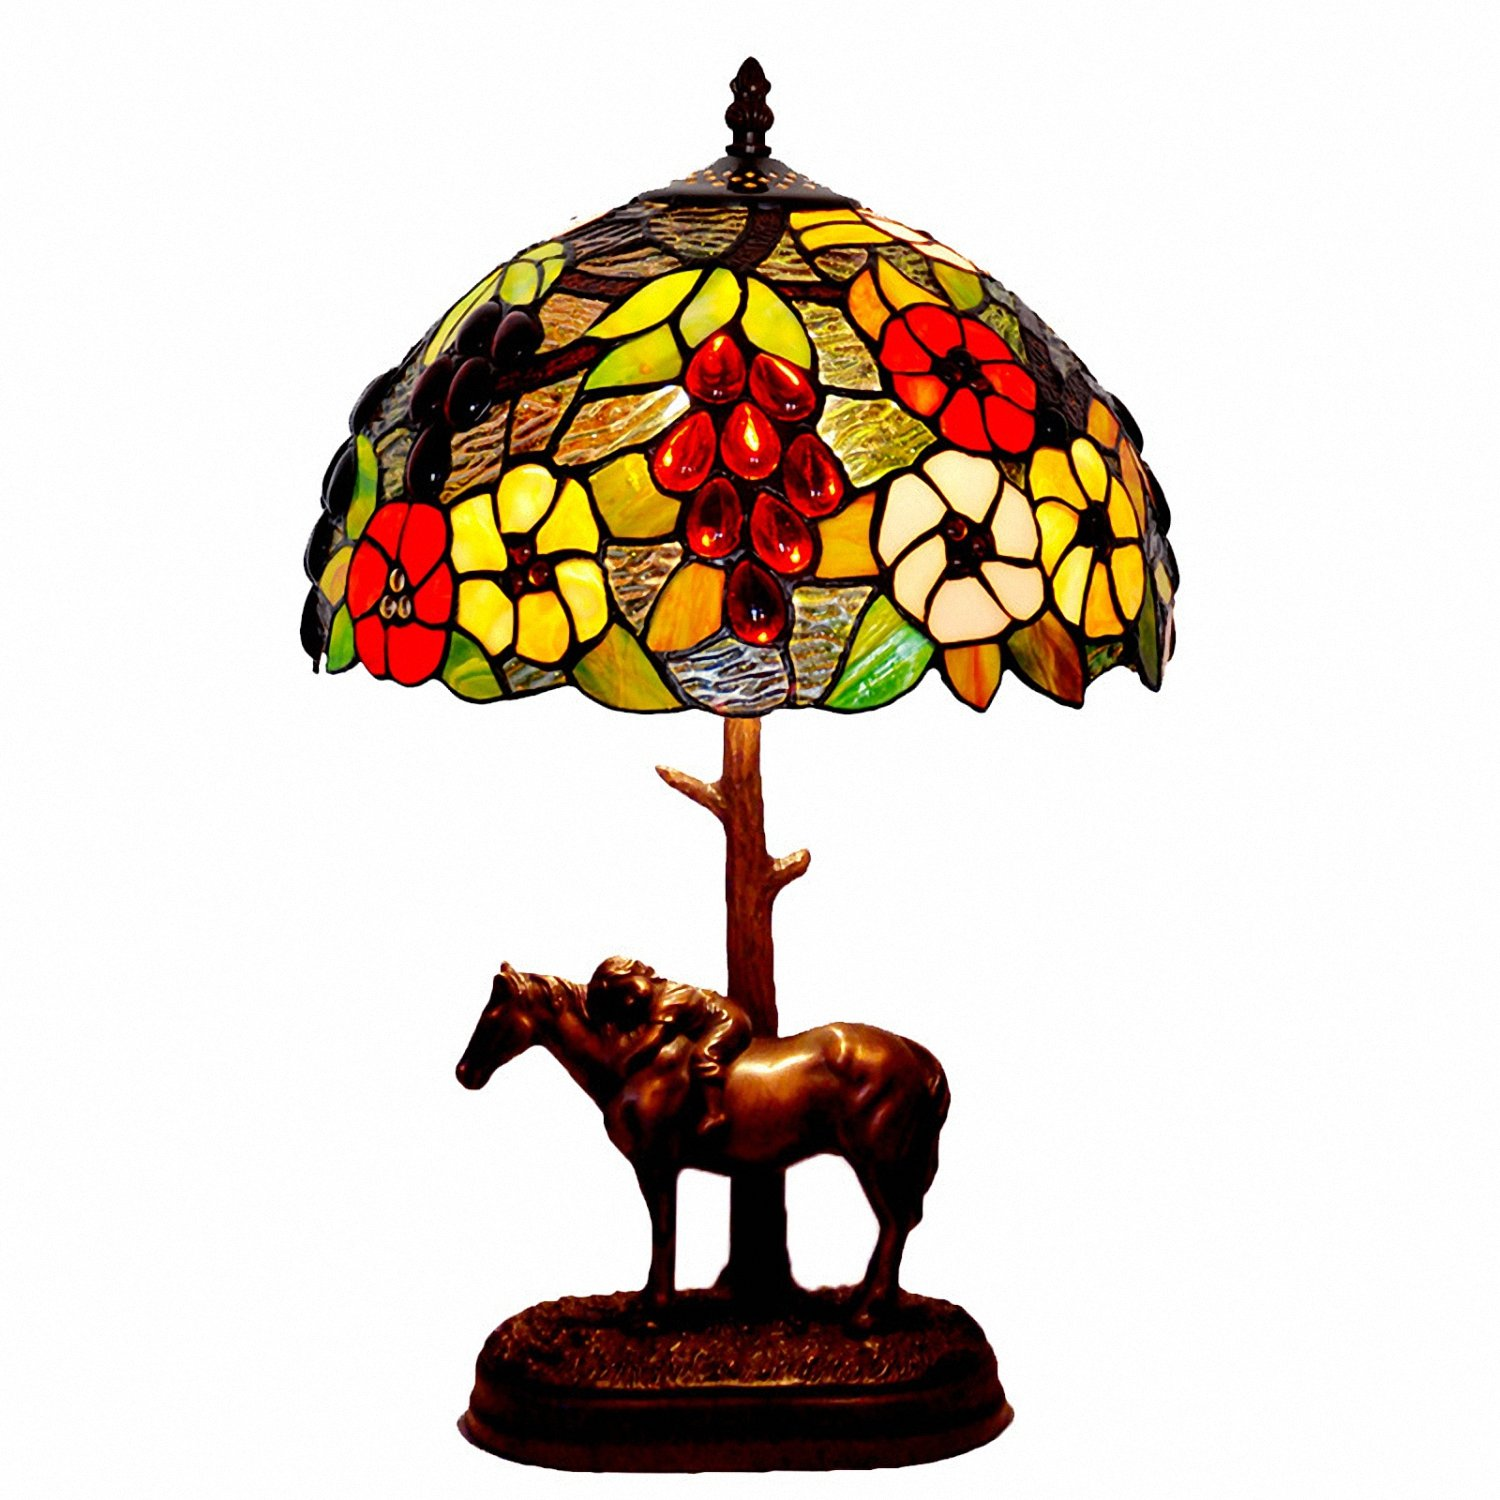 Table Lamps,Magcolor Tiffany Style Stained Glass Grapes and Flowers Table Lamp with 12 inches Handmade Lampshade and Child Horse Lamp Base Made of Resin,Suitable for Decorating Room